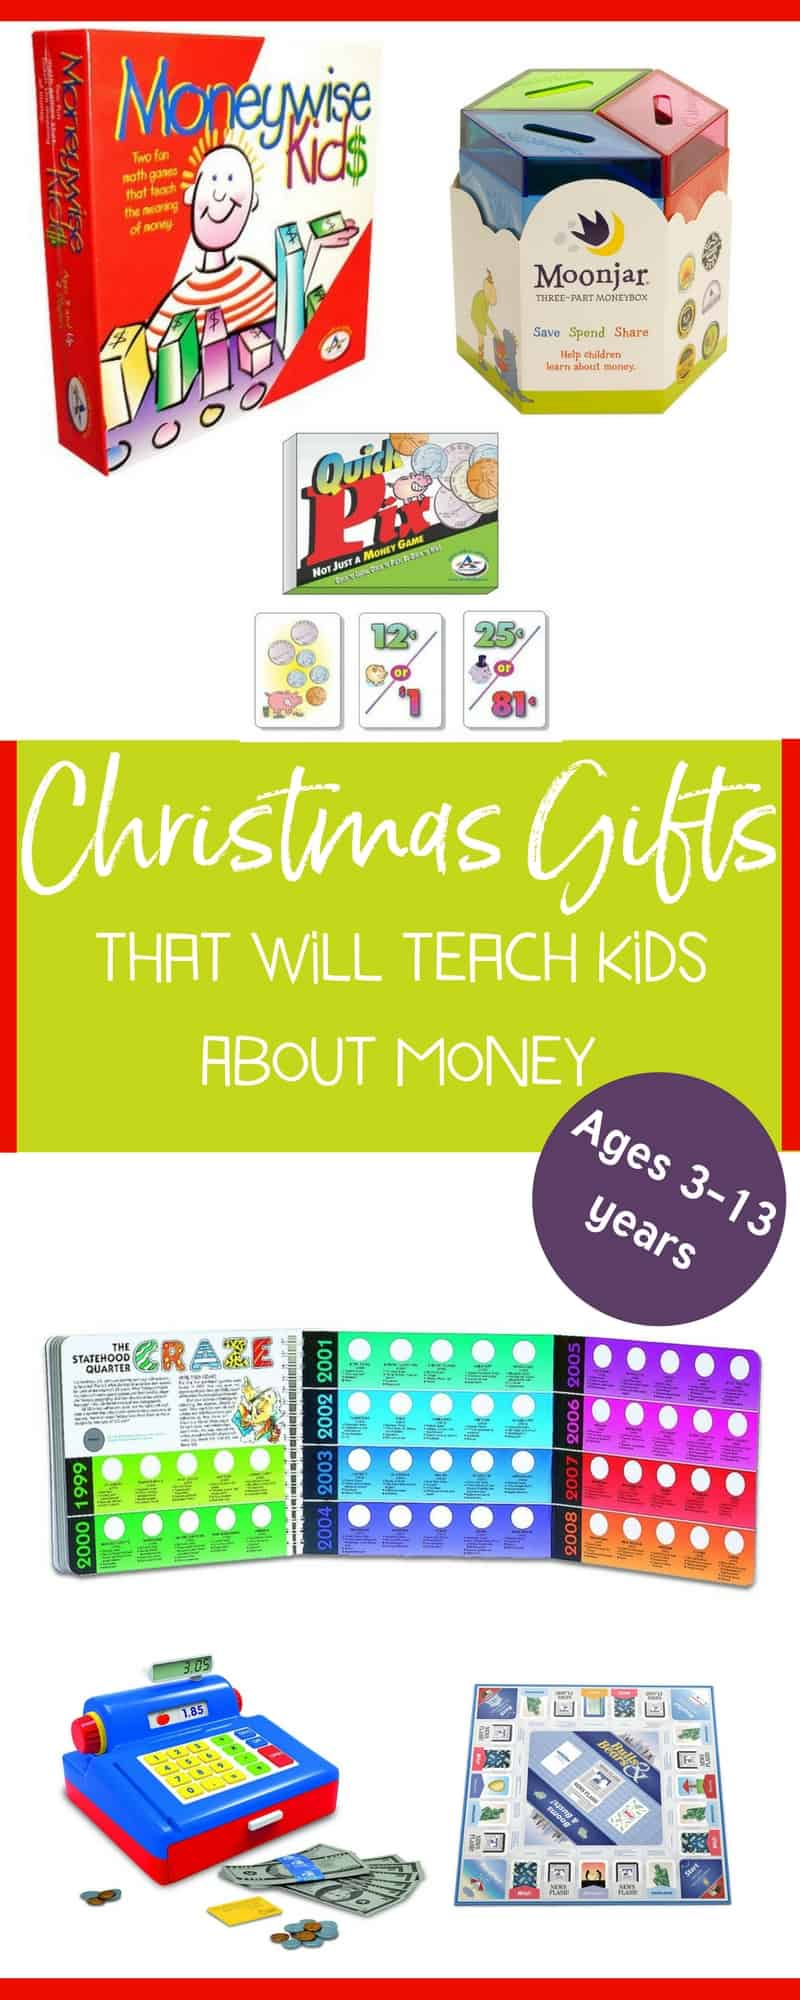 I love these educational toys for kids! Great ideas for holiday gifts. #educationaltoysforkids #educationaltoys #kids #christmasgiftsforkids | https://www.moneyprodigy.com/9-money-educational-toys-for-kids/